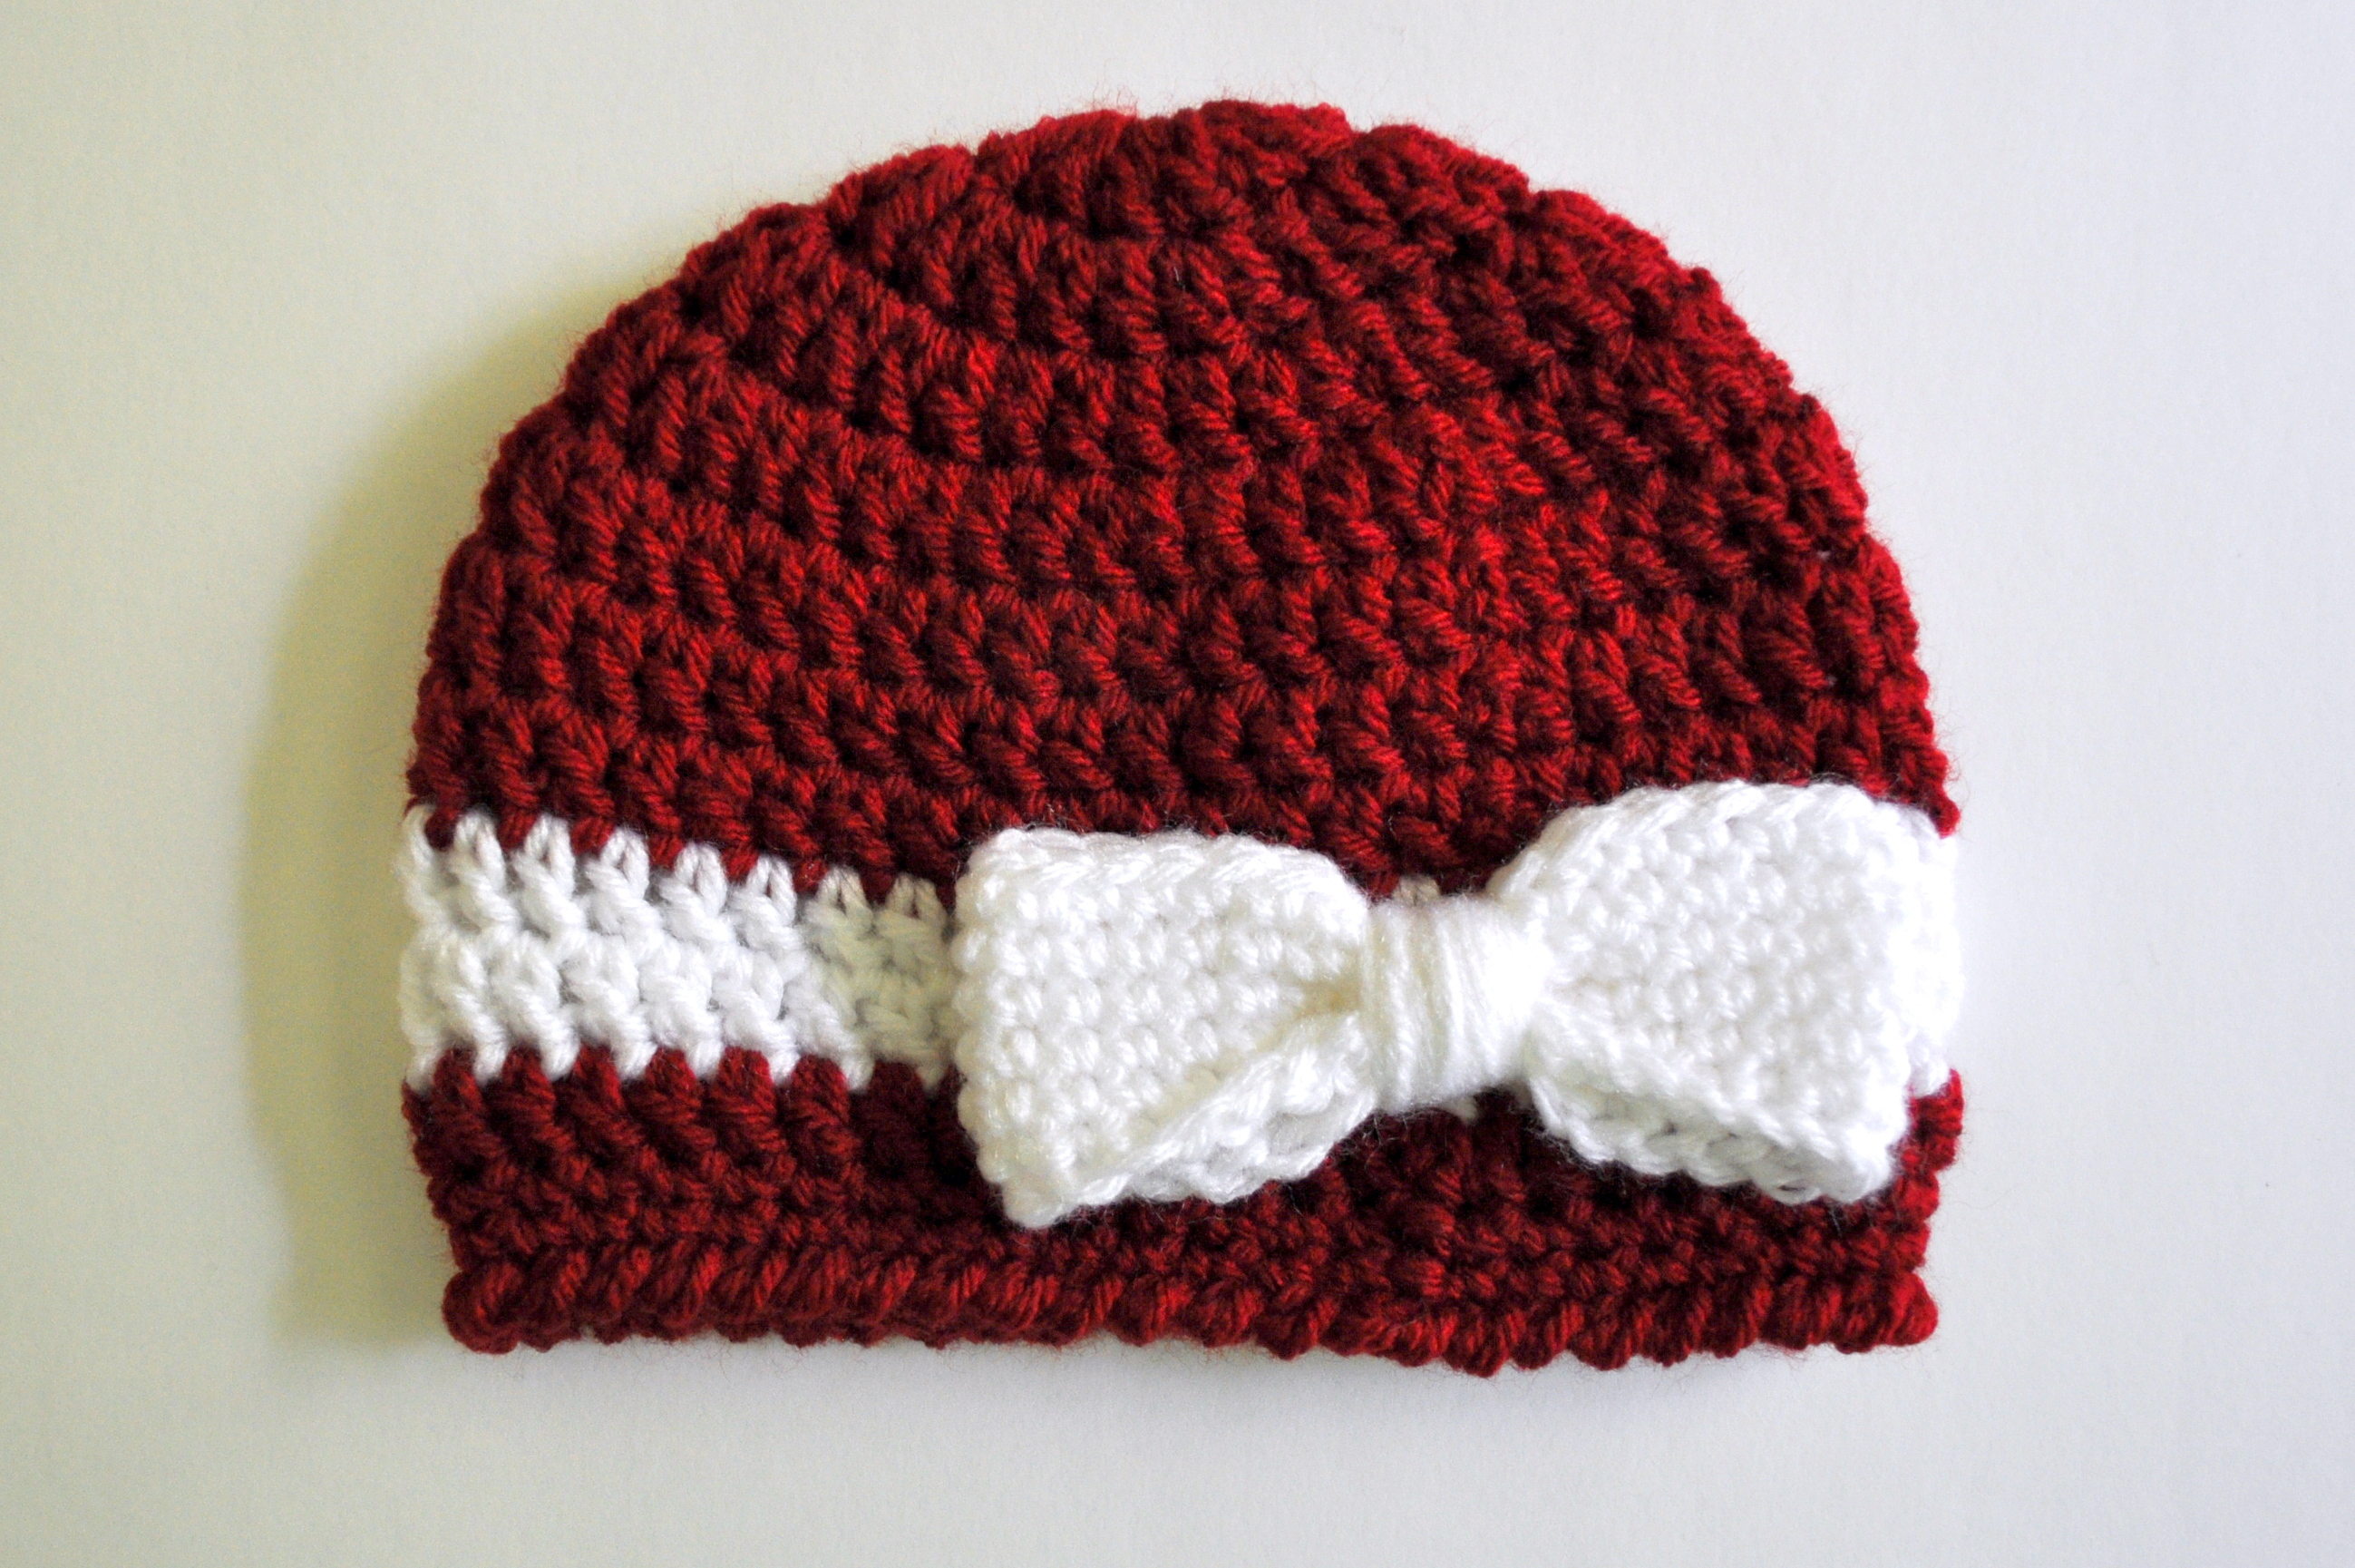 Free Crochet Hat Pattern With Bow : Free Pattern: Crochet Bow and Ribbon Baby Hat Classy Crochet